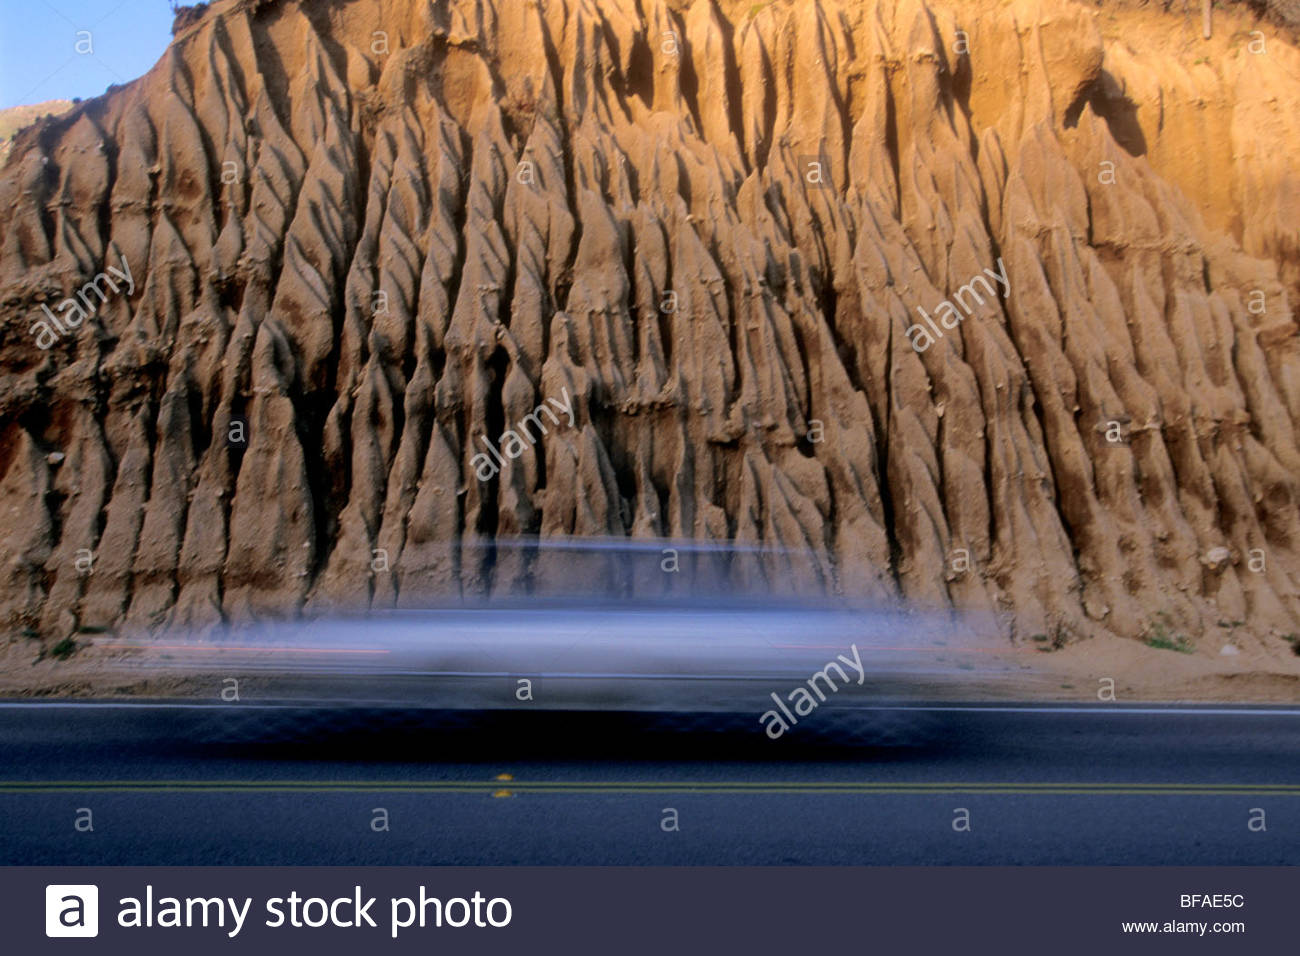 Eroded slopes along Highway 1, Big Sur, California - Stock Image